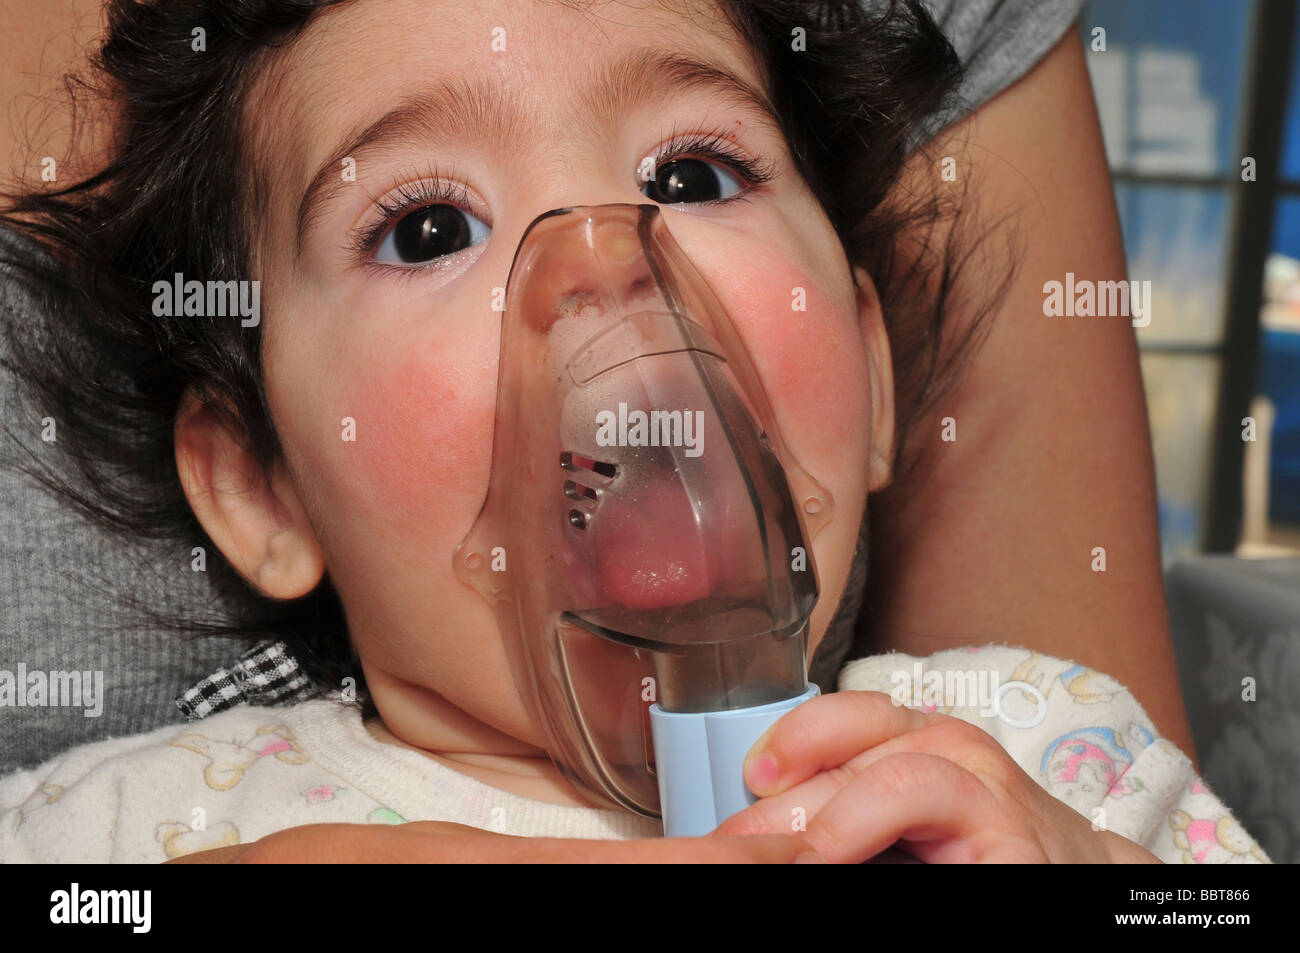 An Asthmatic child of 4 holds an inhaler on his face Model release available - Stock Image